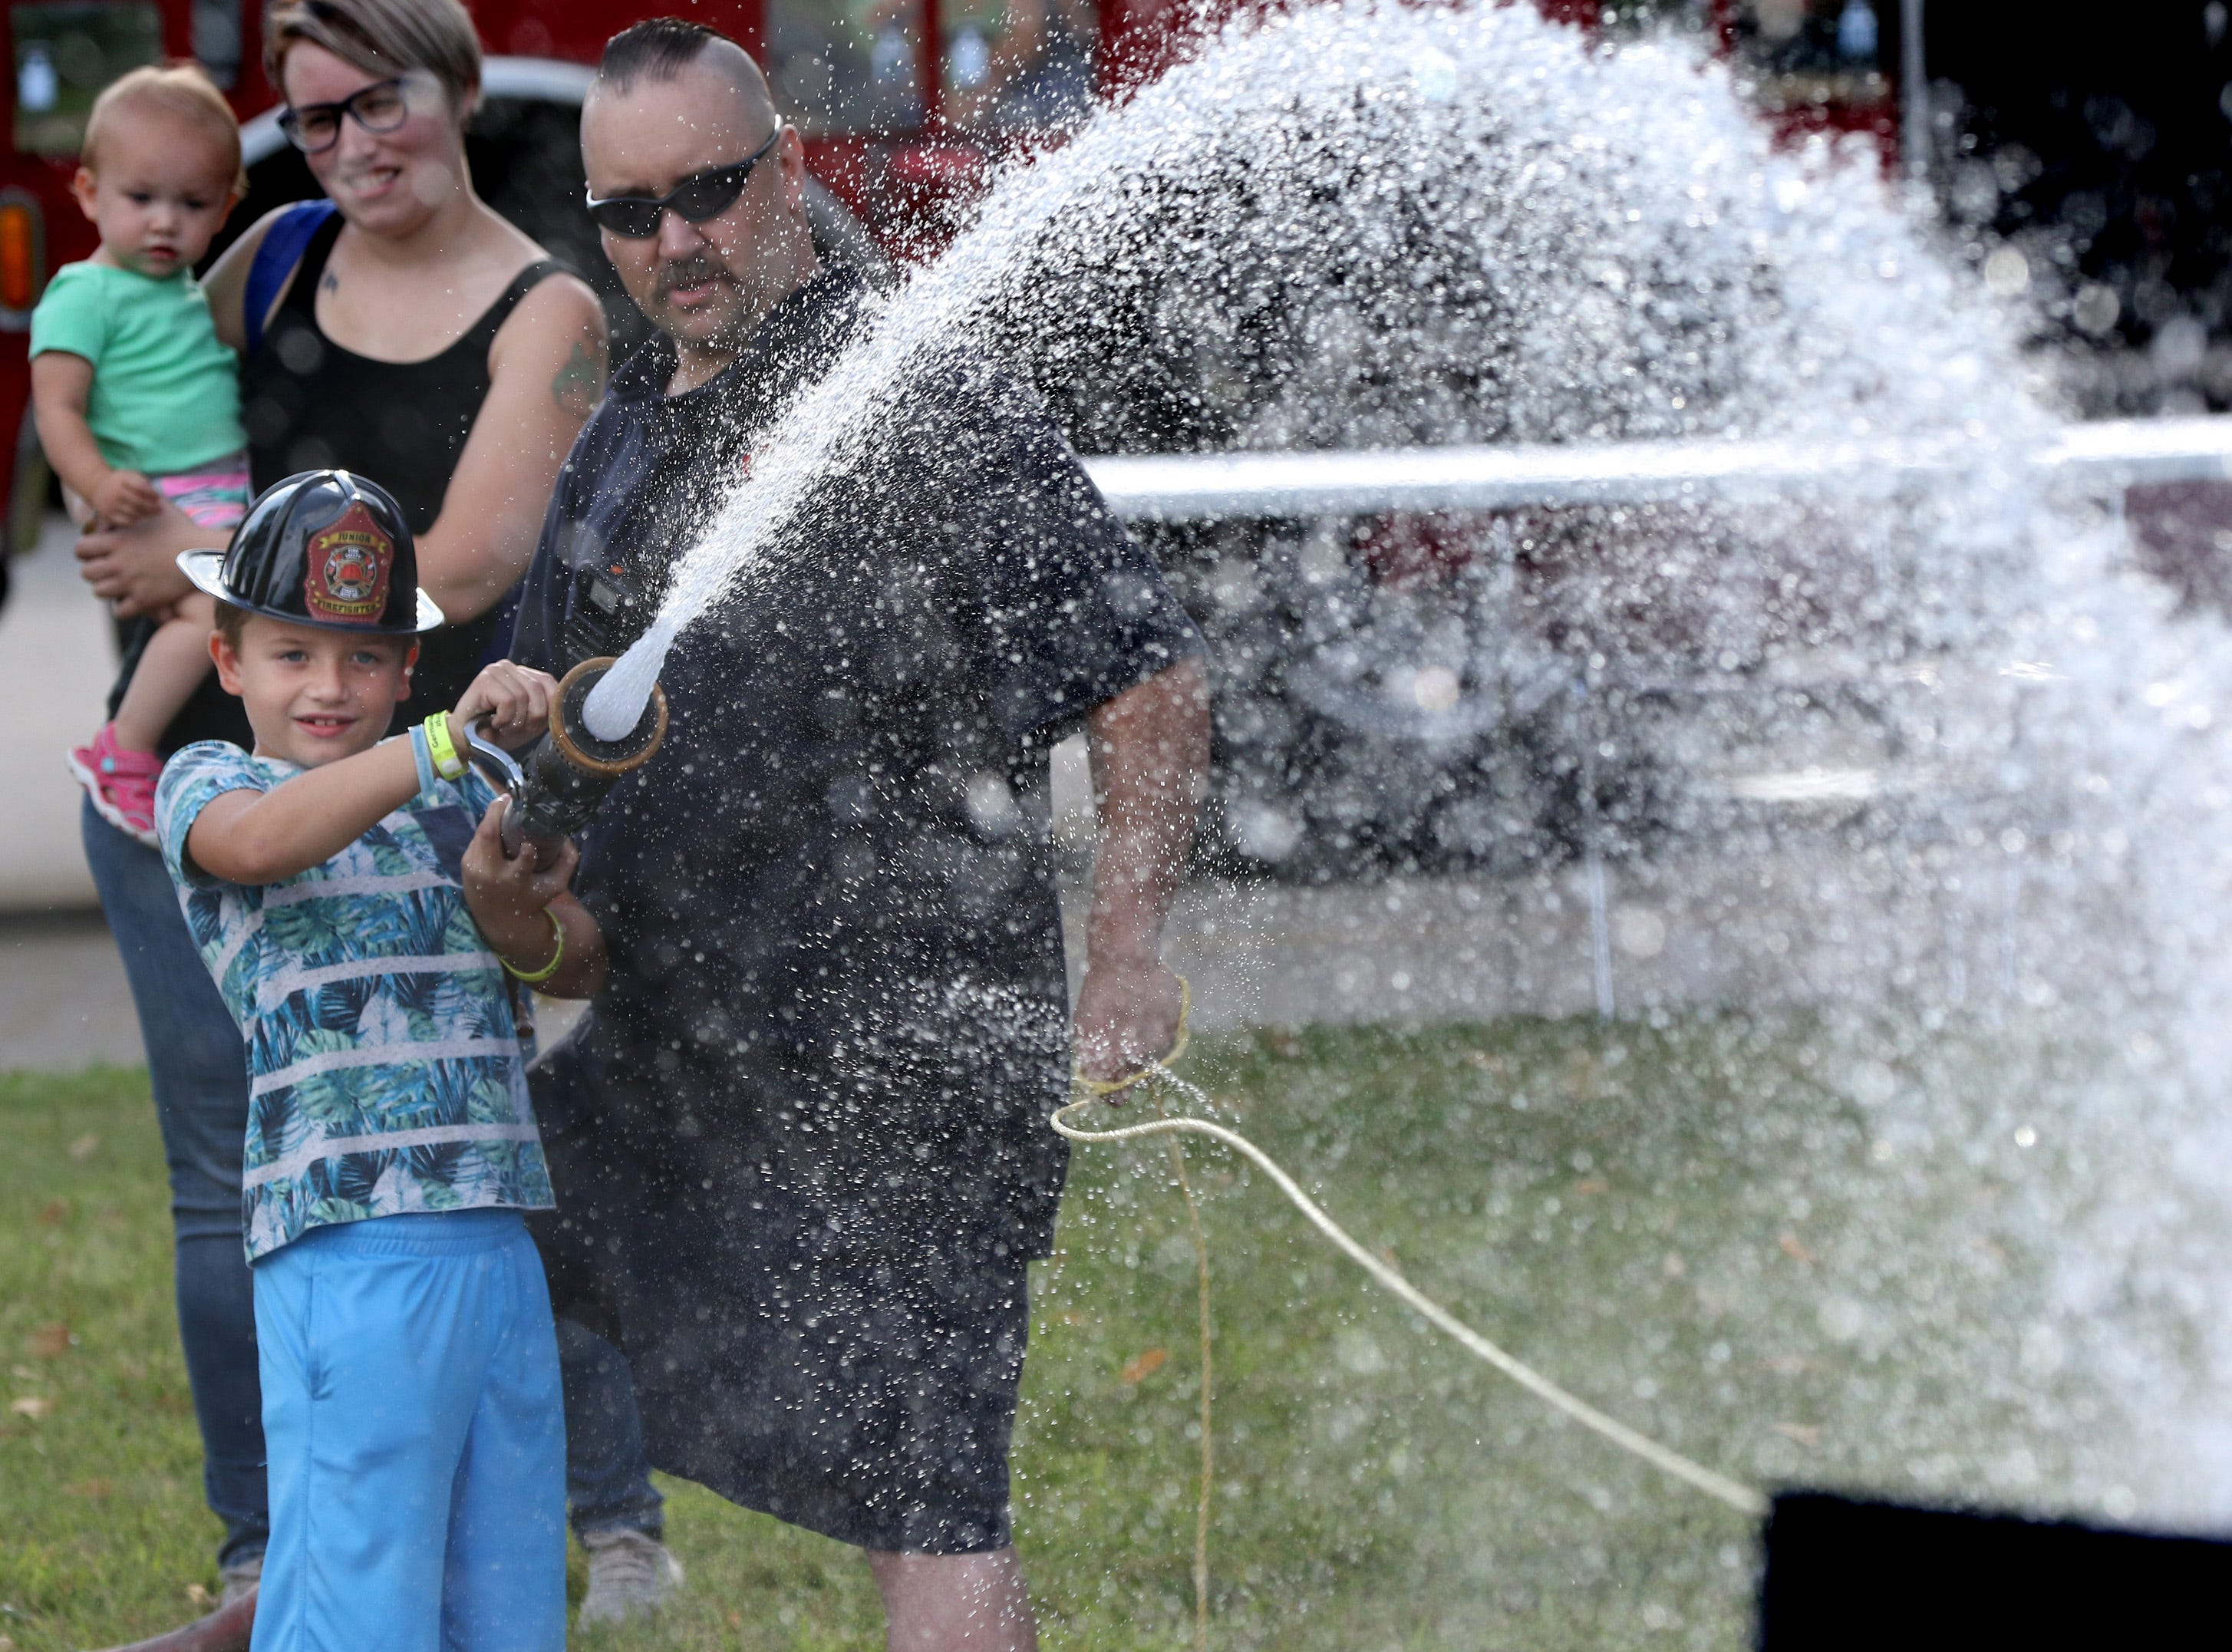 Mason Baier, 8, tries a fire hose with Firefighter/Paramedic Brian Moe during Brookfield's National Night Out at the Brookfield Fire Department Station 1 on Aug. 1.